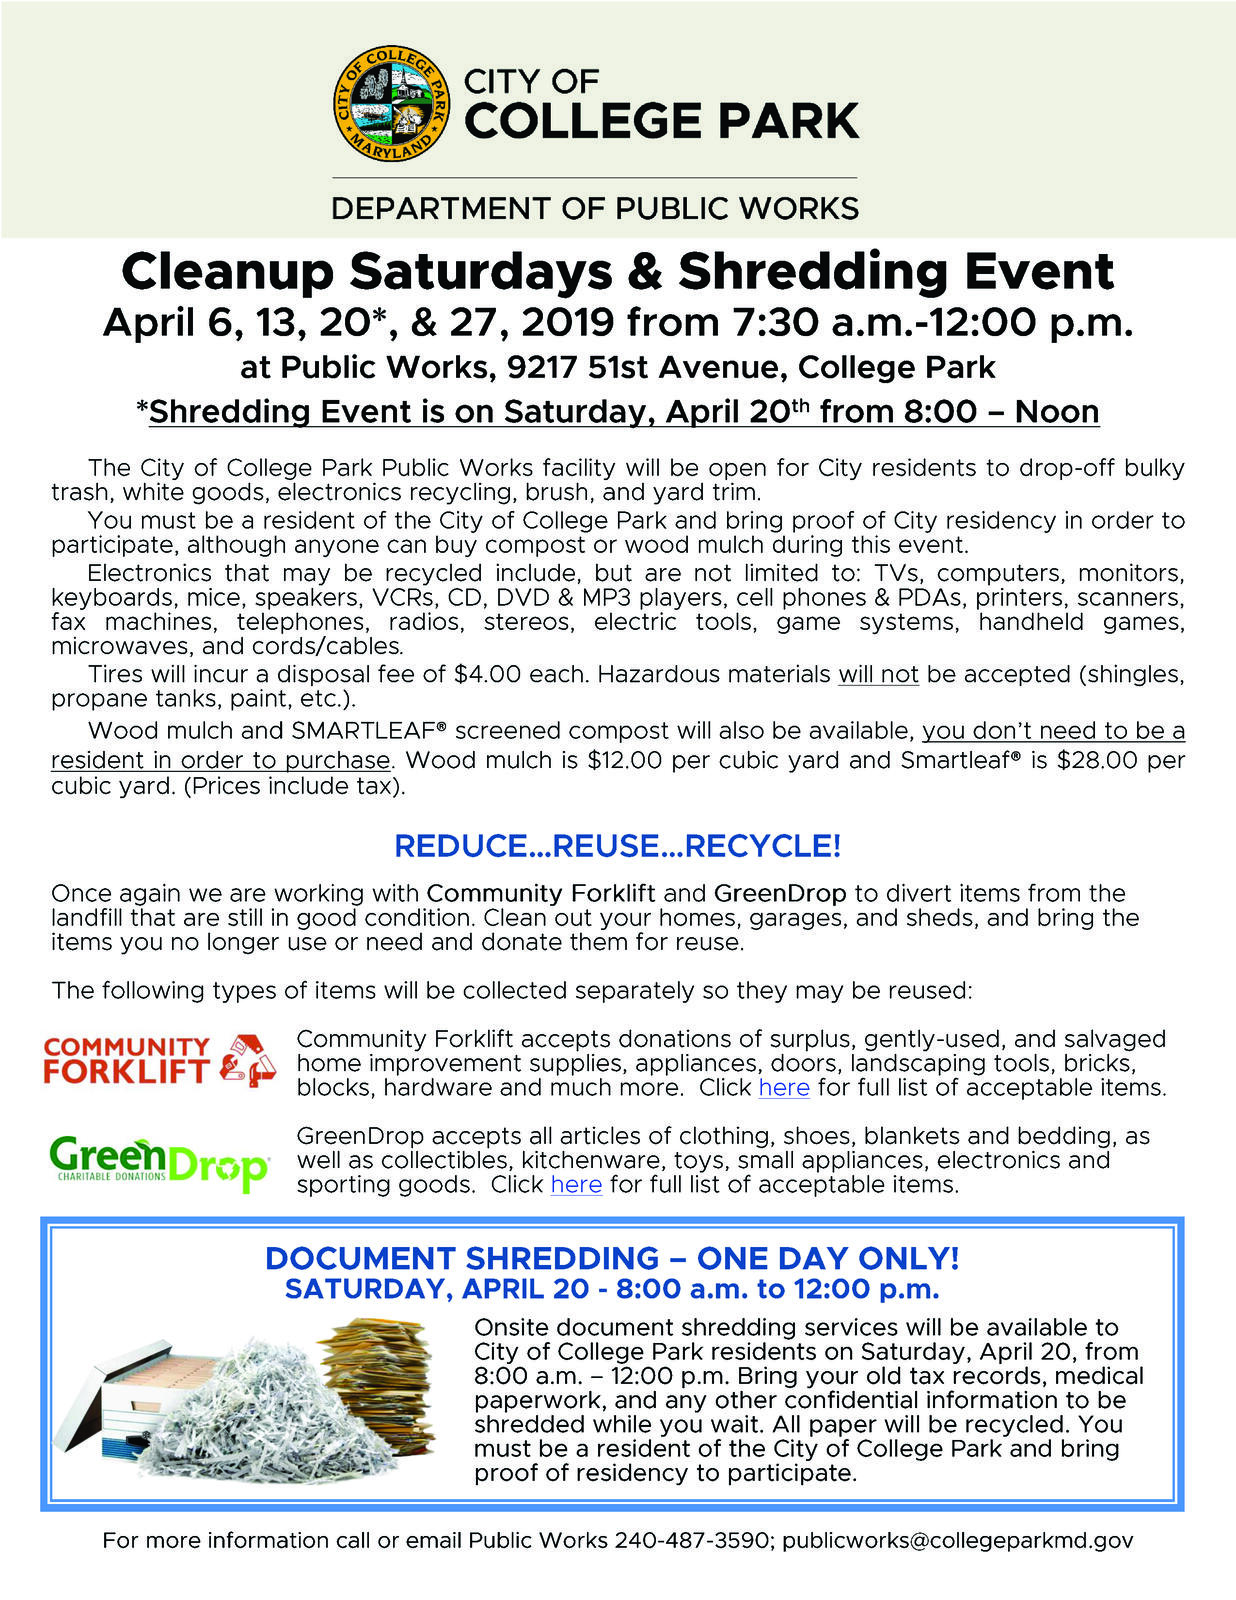 Department of Public Works Cleanup Saturdays Start Tomorrow! (City